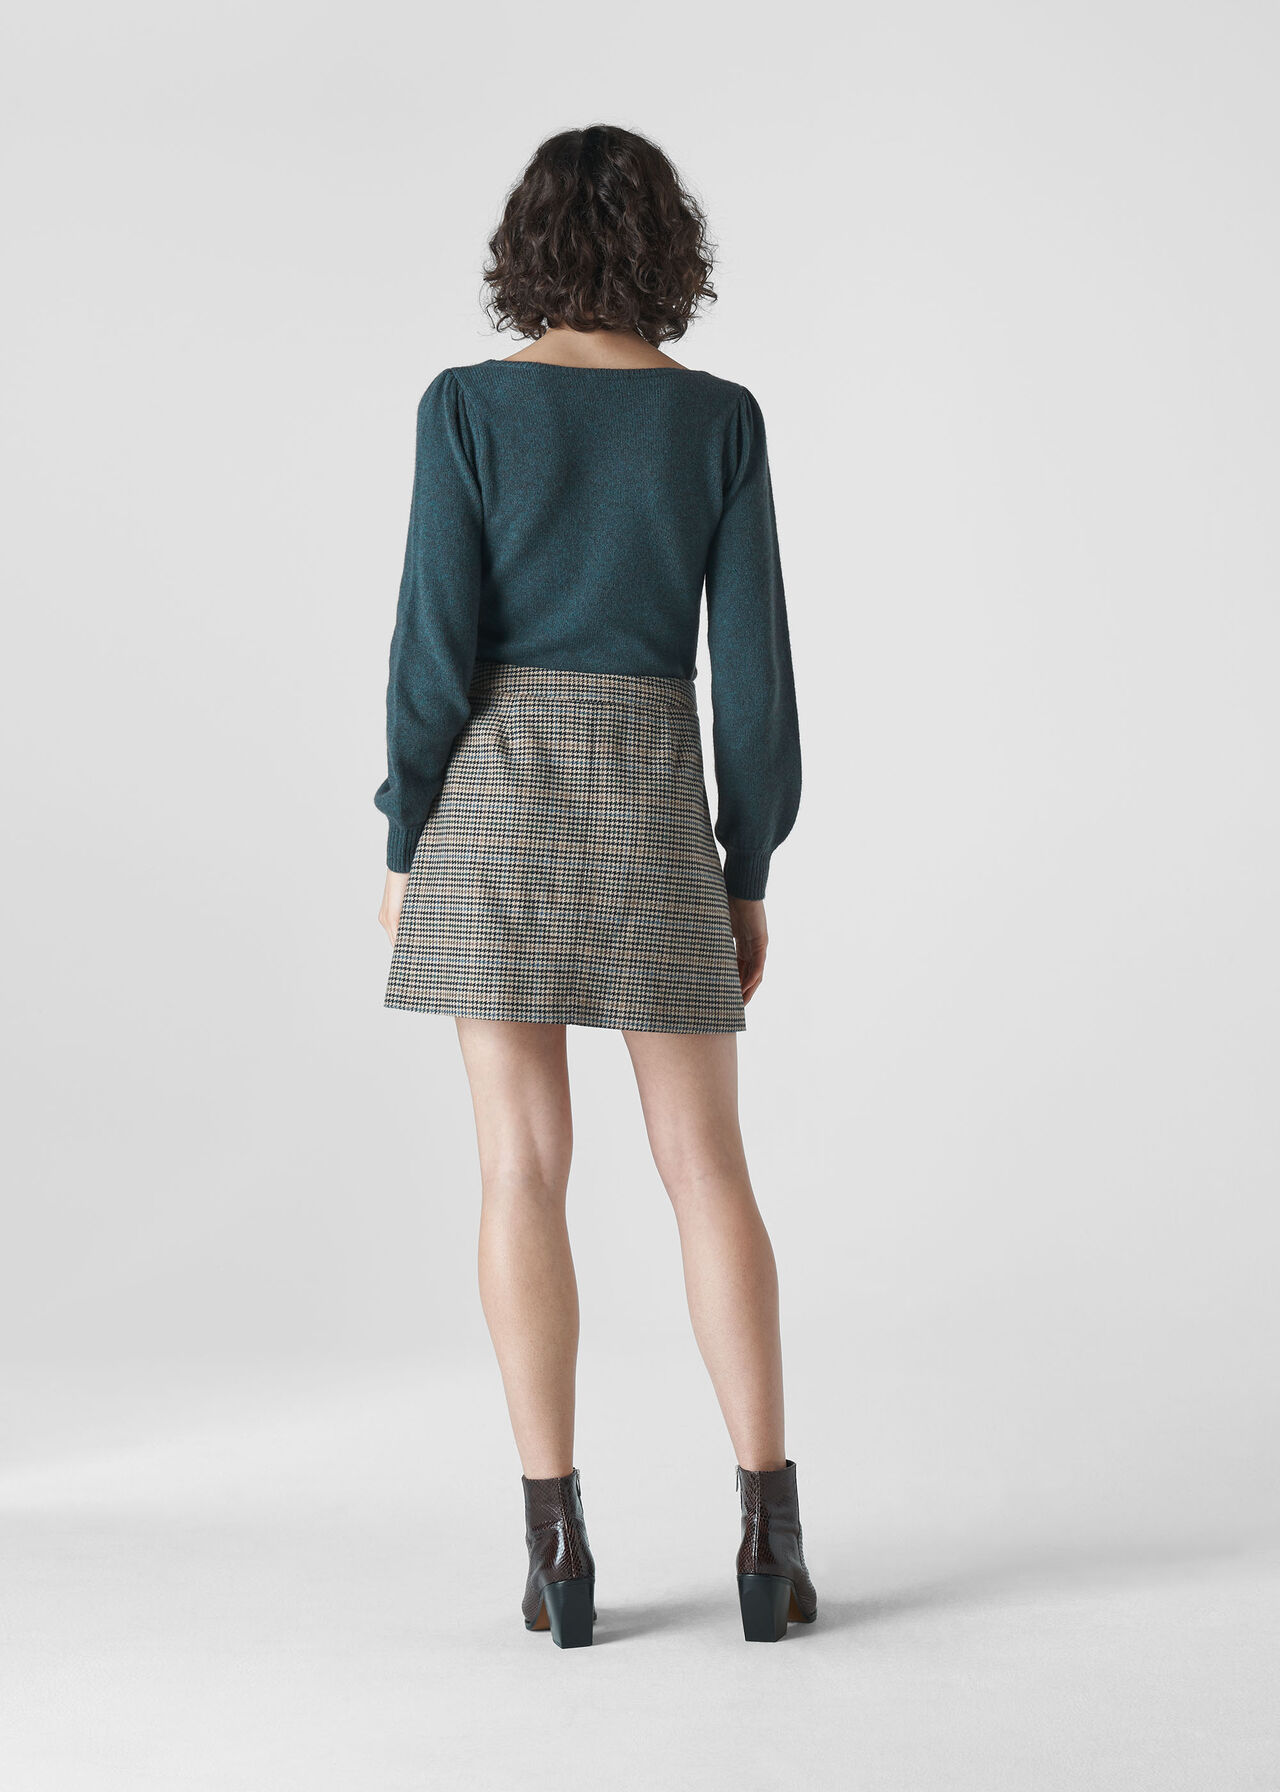 Square Neck Yak Mix Knit Teal